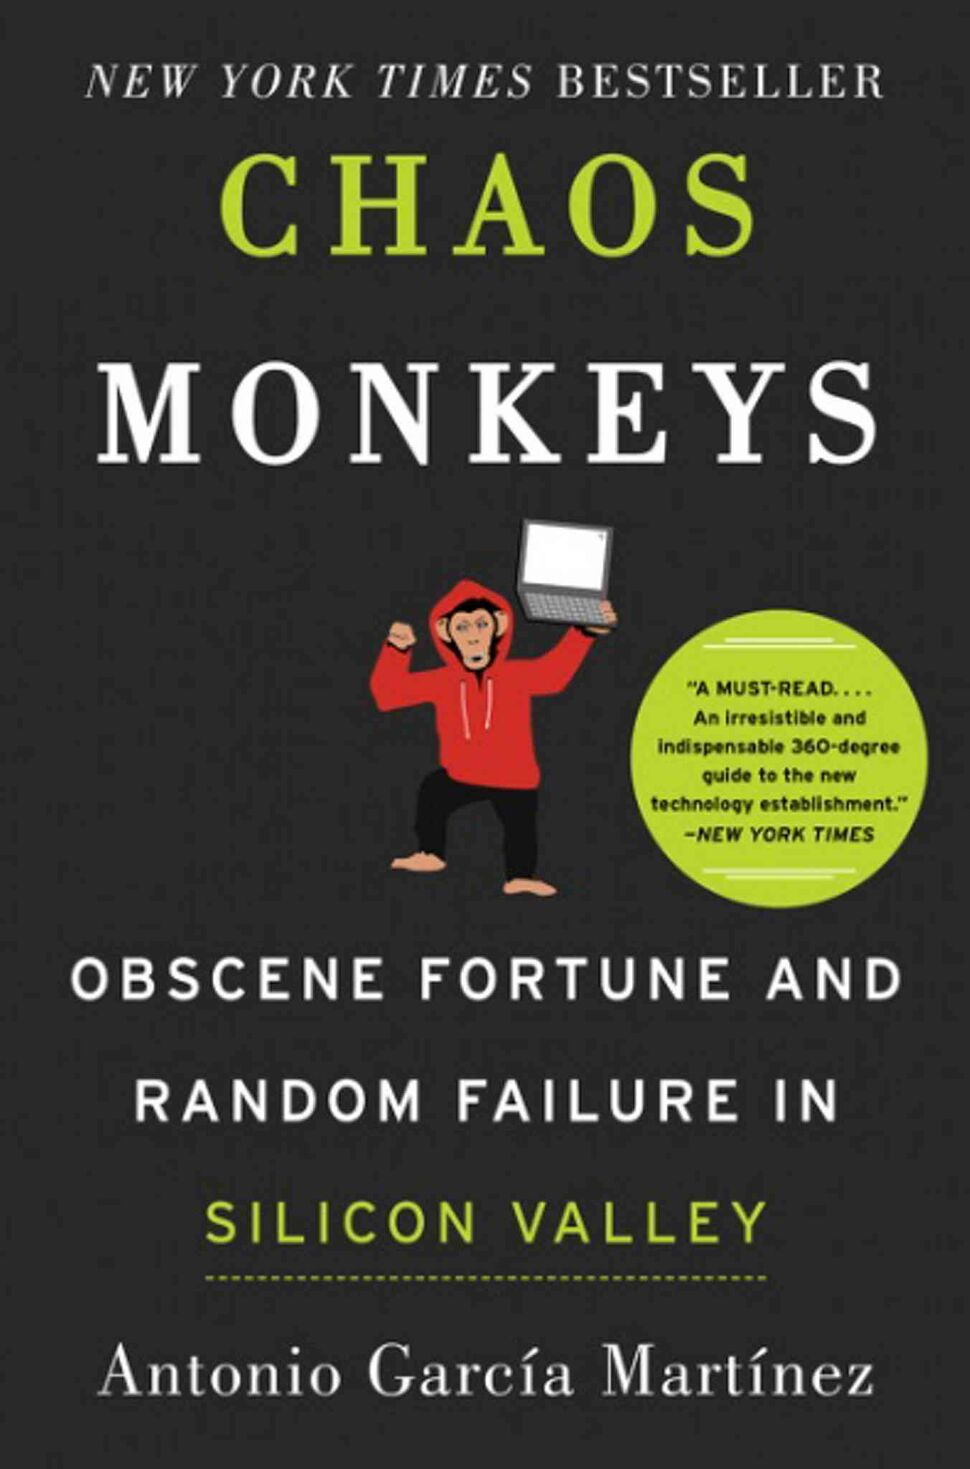 <h3>Chaos Monkeys: Obscene Fortune and Random Failure in Silicon Valley</h3> <br/> By Antonio García Martínez <br/> <strong>If you're fascinated by Silicon Valley startups and know Uber is no longer just an adjective, Chaos Monkeys might hit the spot. This first-person techie tome is a mashup of Wolf of Wall Street, The Social Network and Microserfs, and features enough name-dropping and profanity to keep you turning its many pages. </strong> <br/> — Deborah Bowers